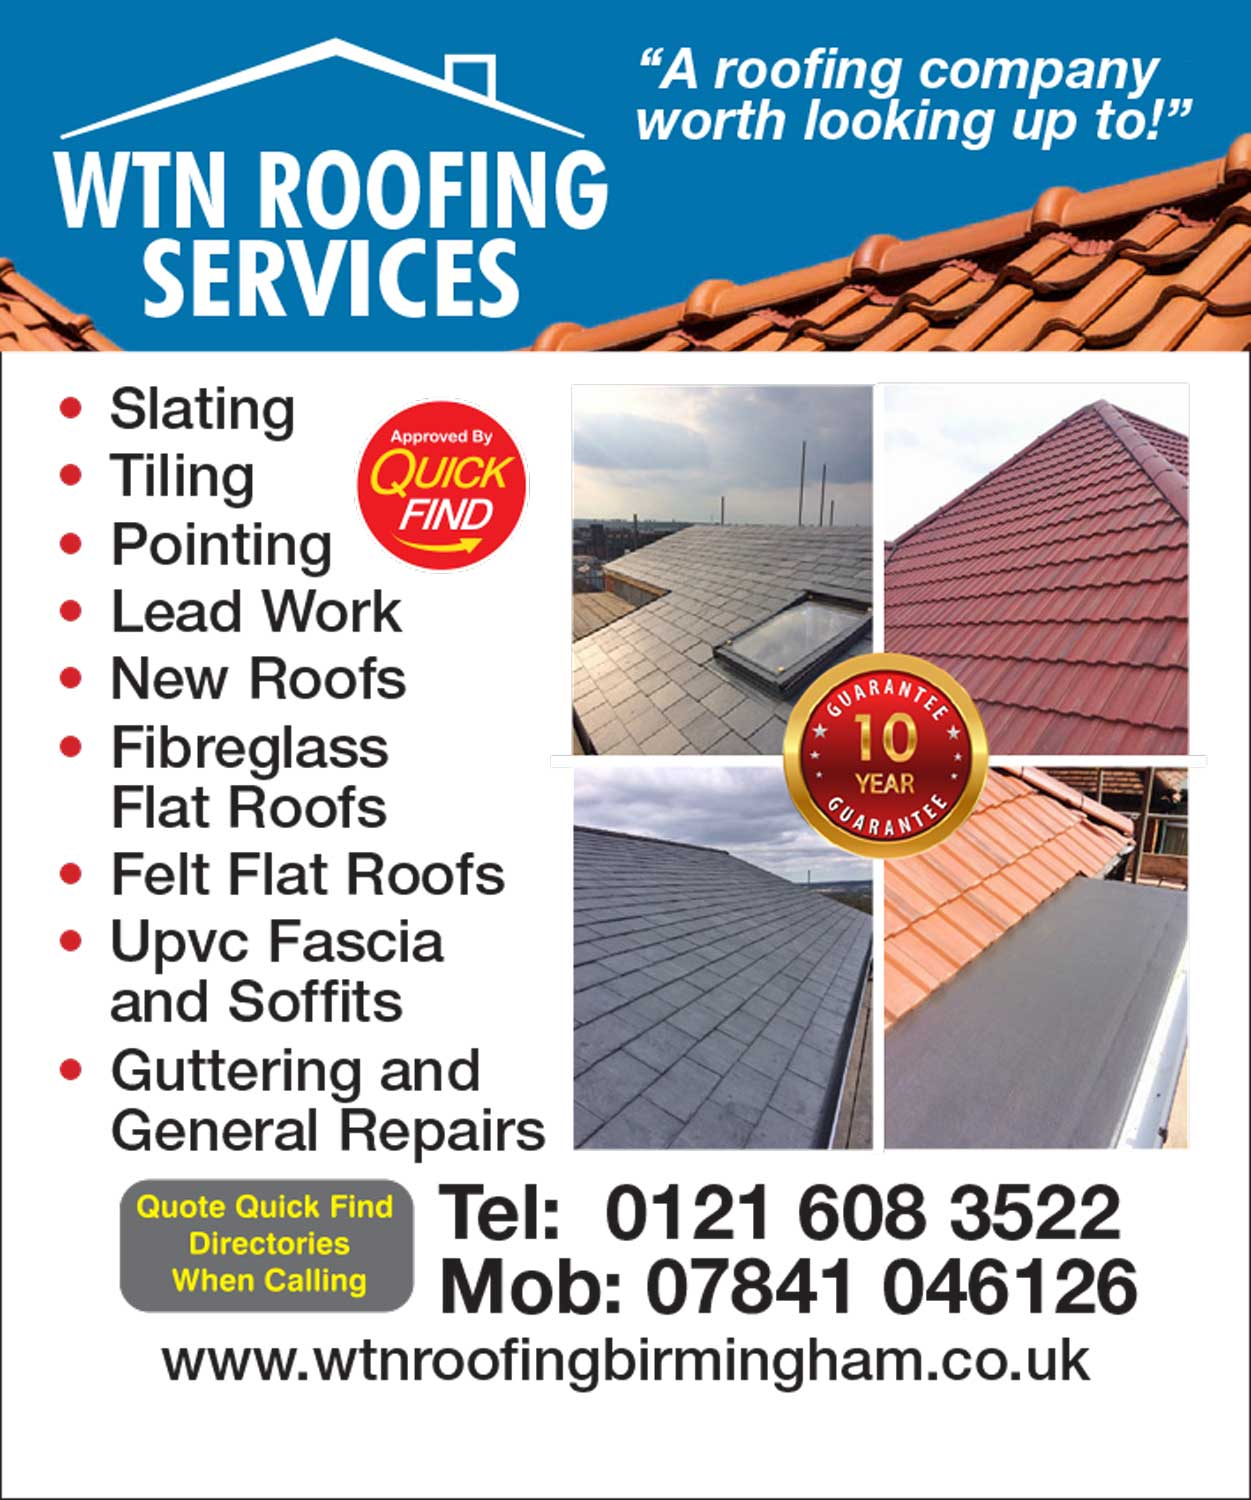 WTN Roofing Services